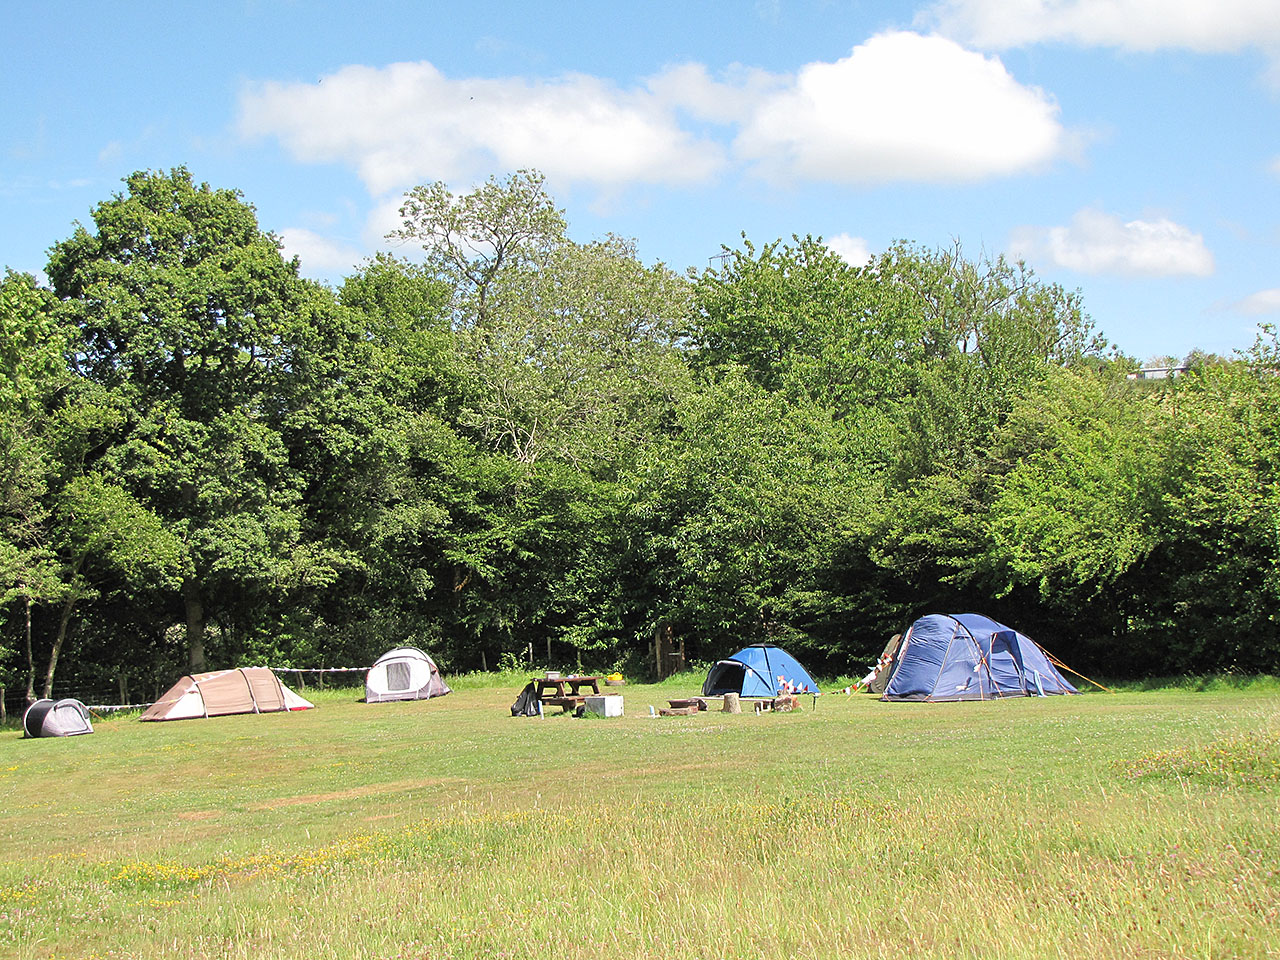 Tents, camping in a field